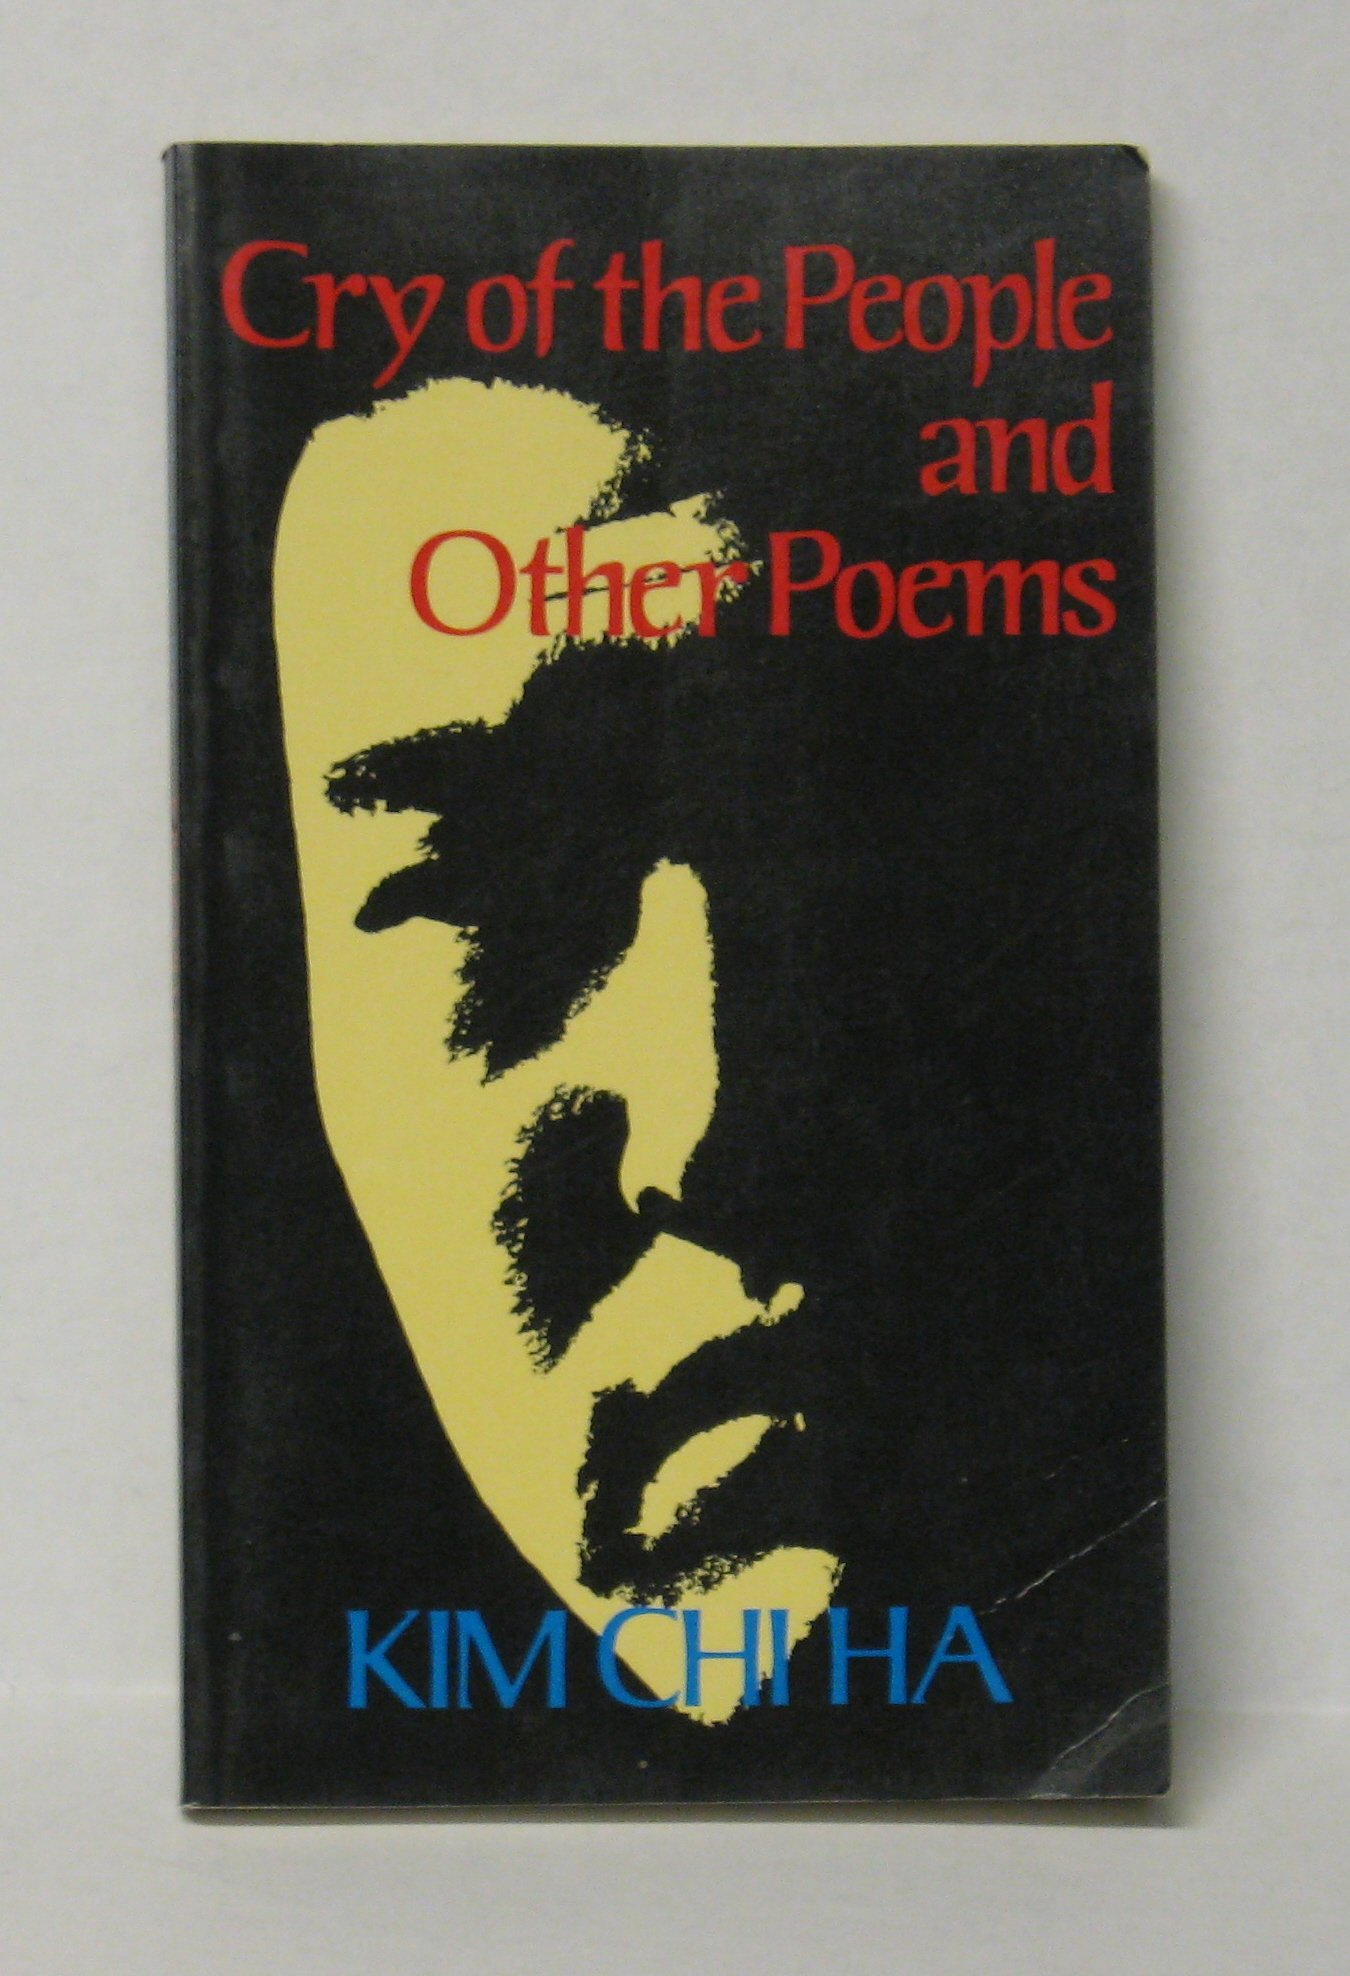 Chi-ha Kim - Cry of the people and other poems